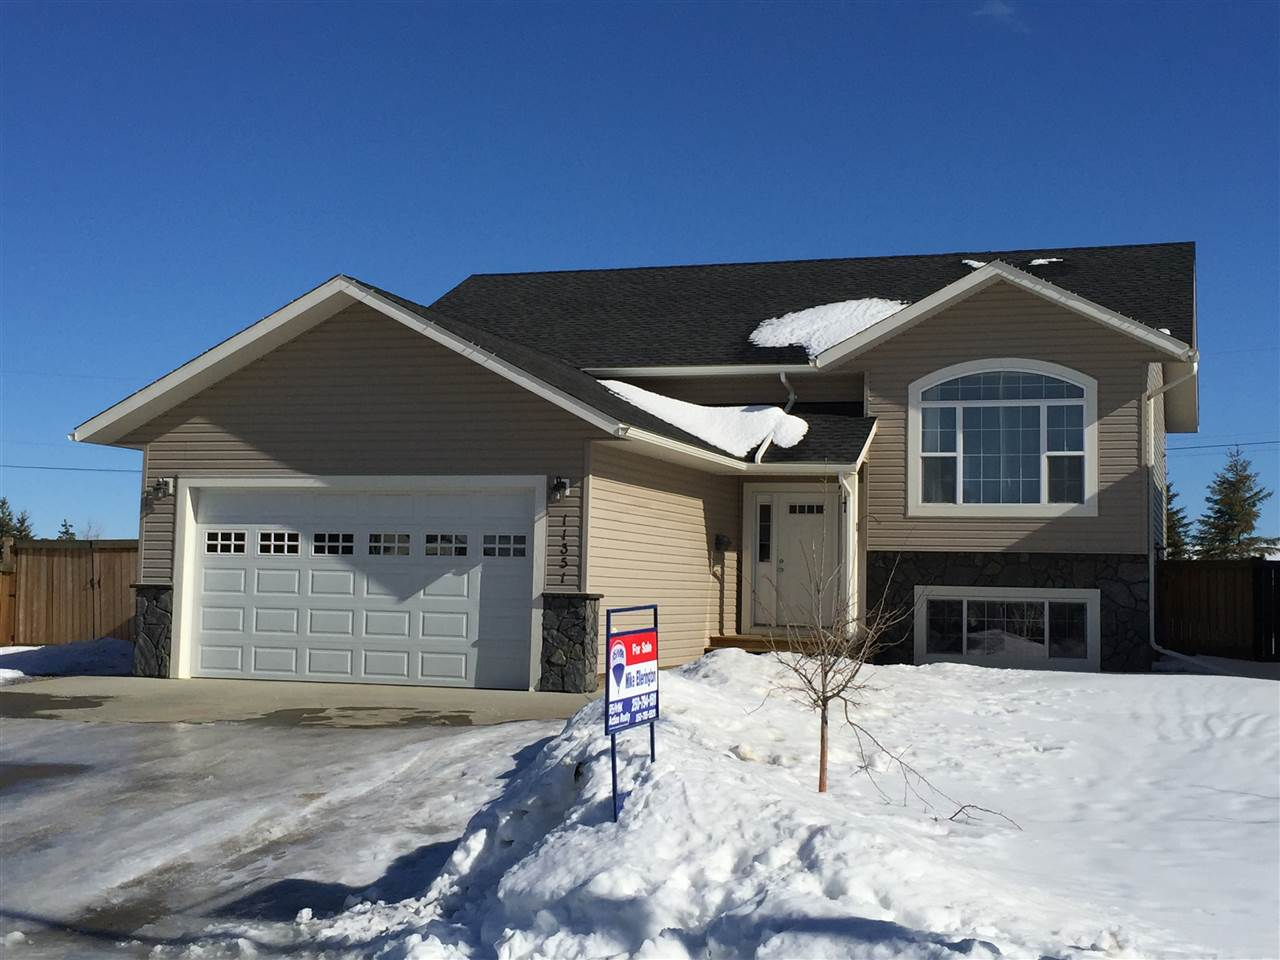 Main Photo: 11351 86A Street in Fort St. John: Fort St. John - City NE House for sale (Fort St. John (Zone 60))  : MLS® # R2147006